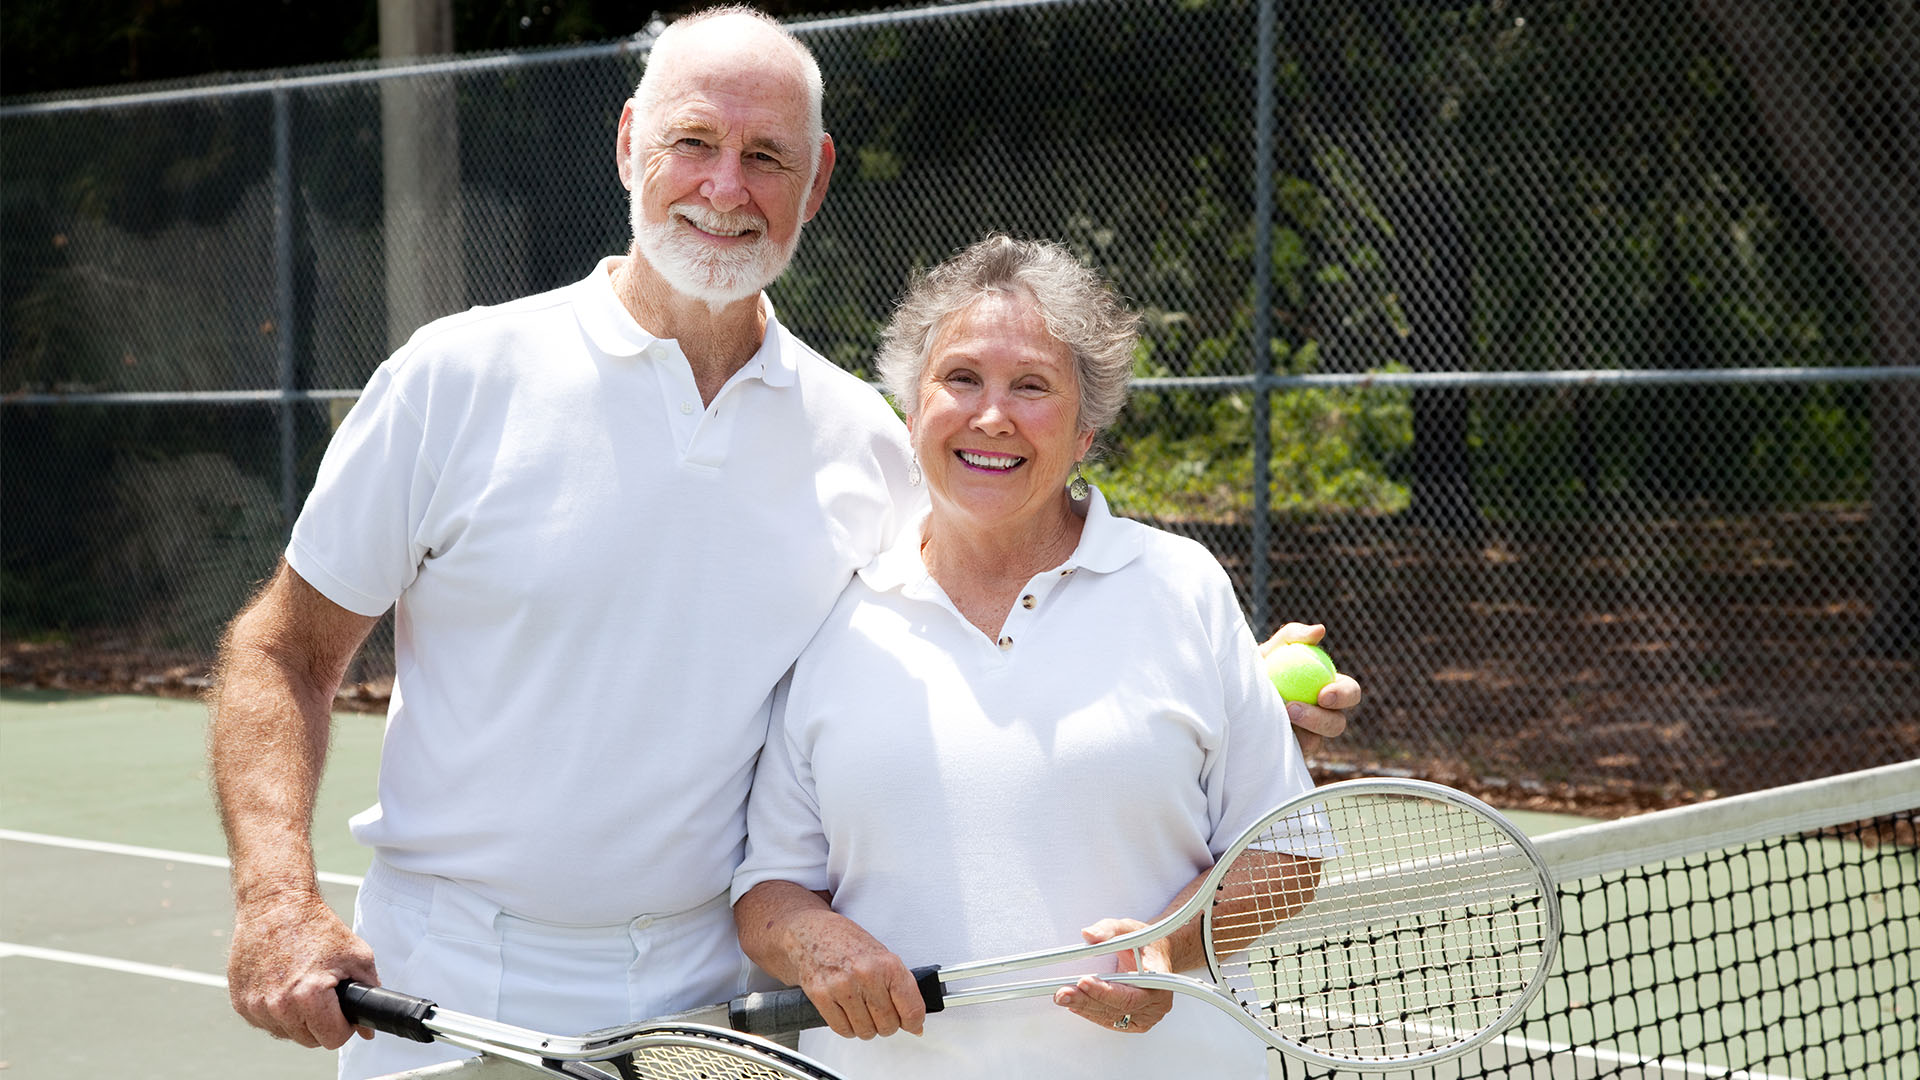 Male and Female senior tennis players next to net